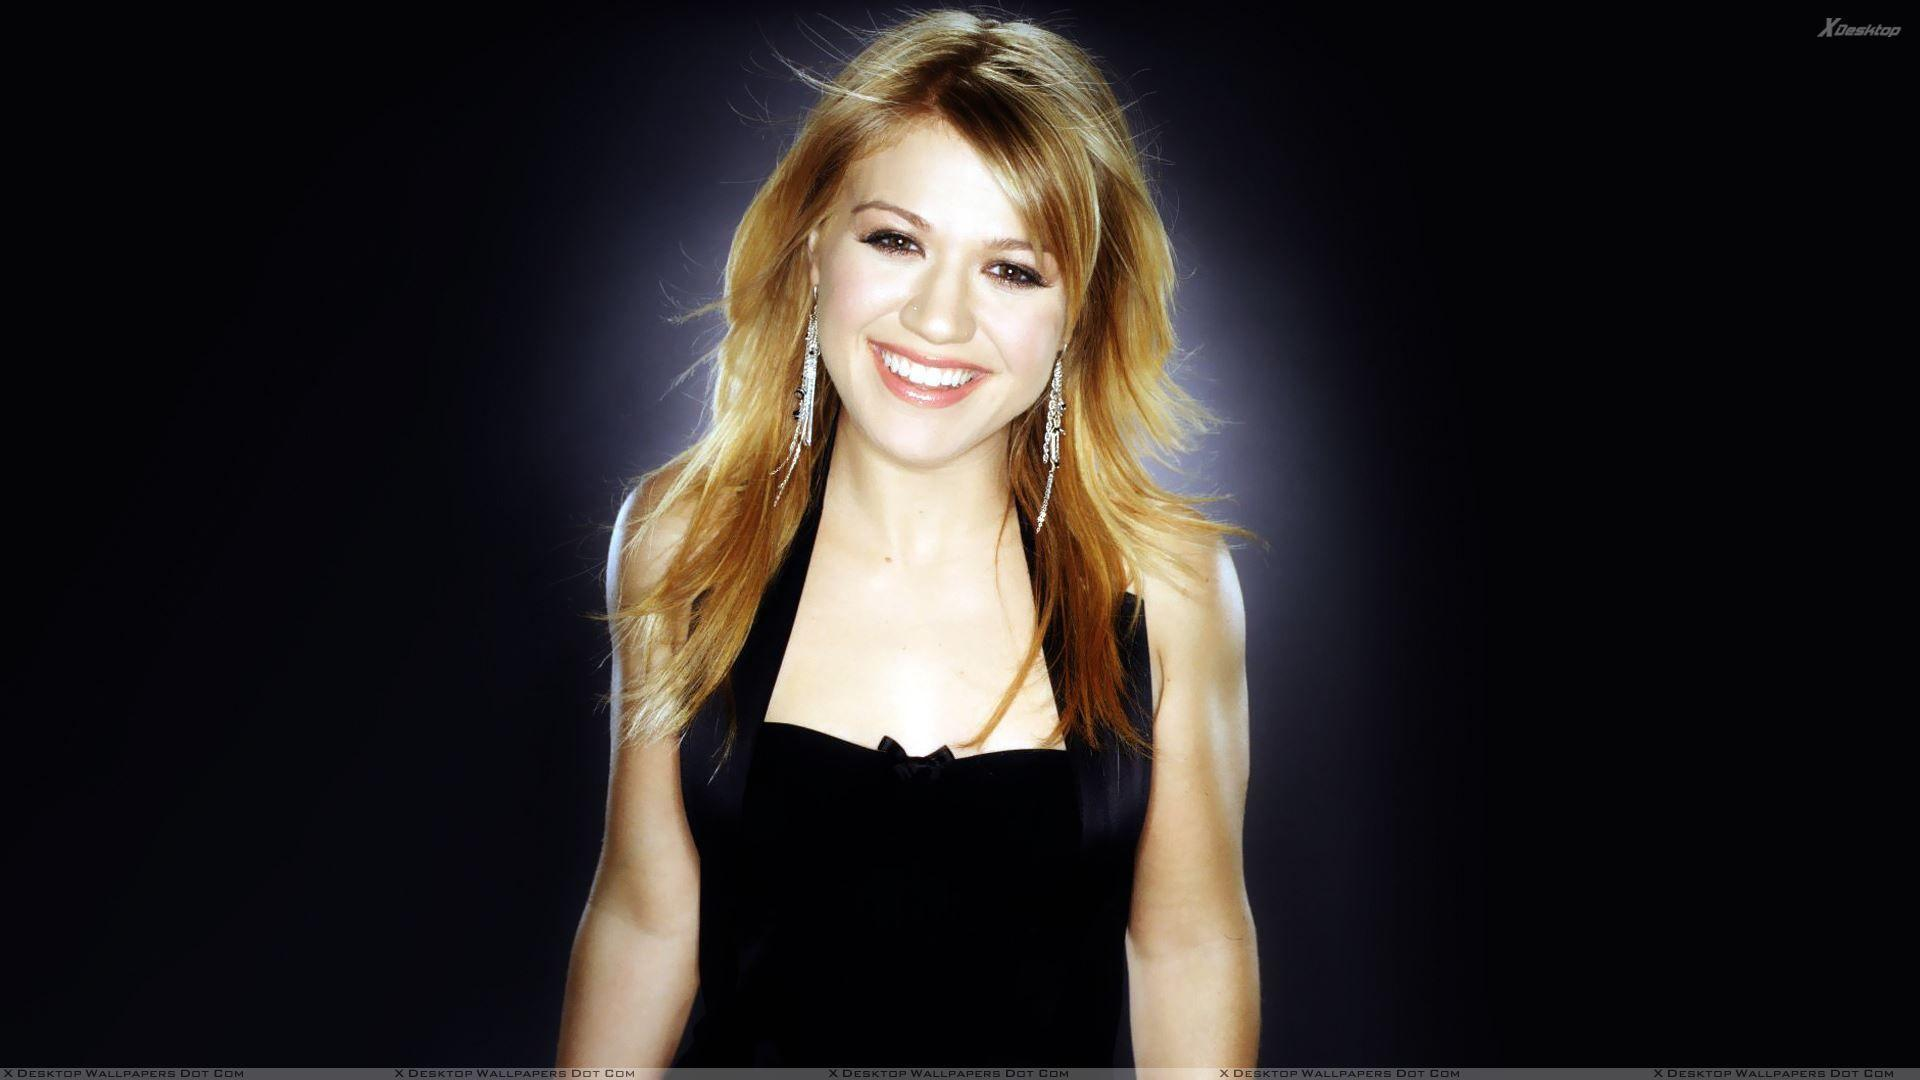 Kelly Clarkson Wallpapers, Photos & Image in HD